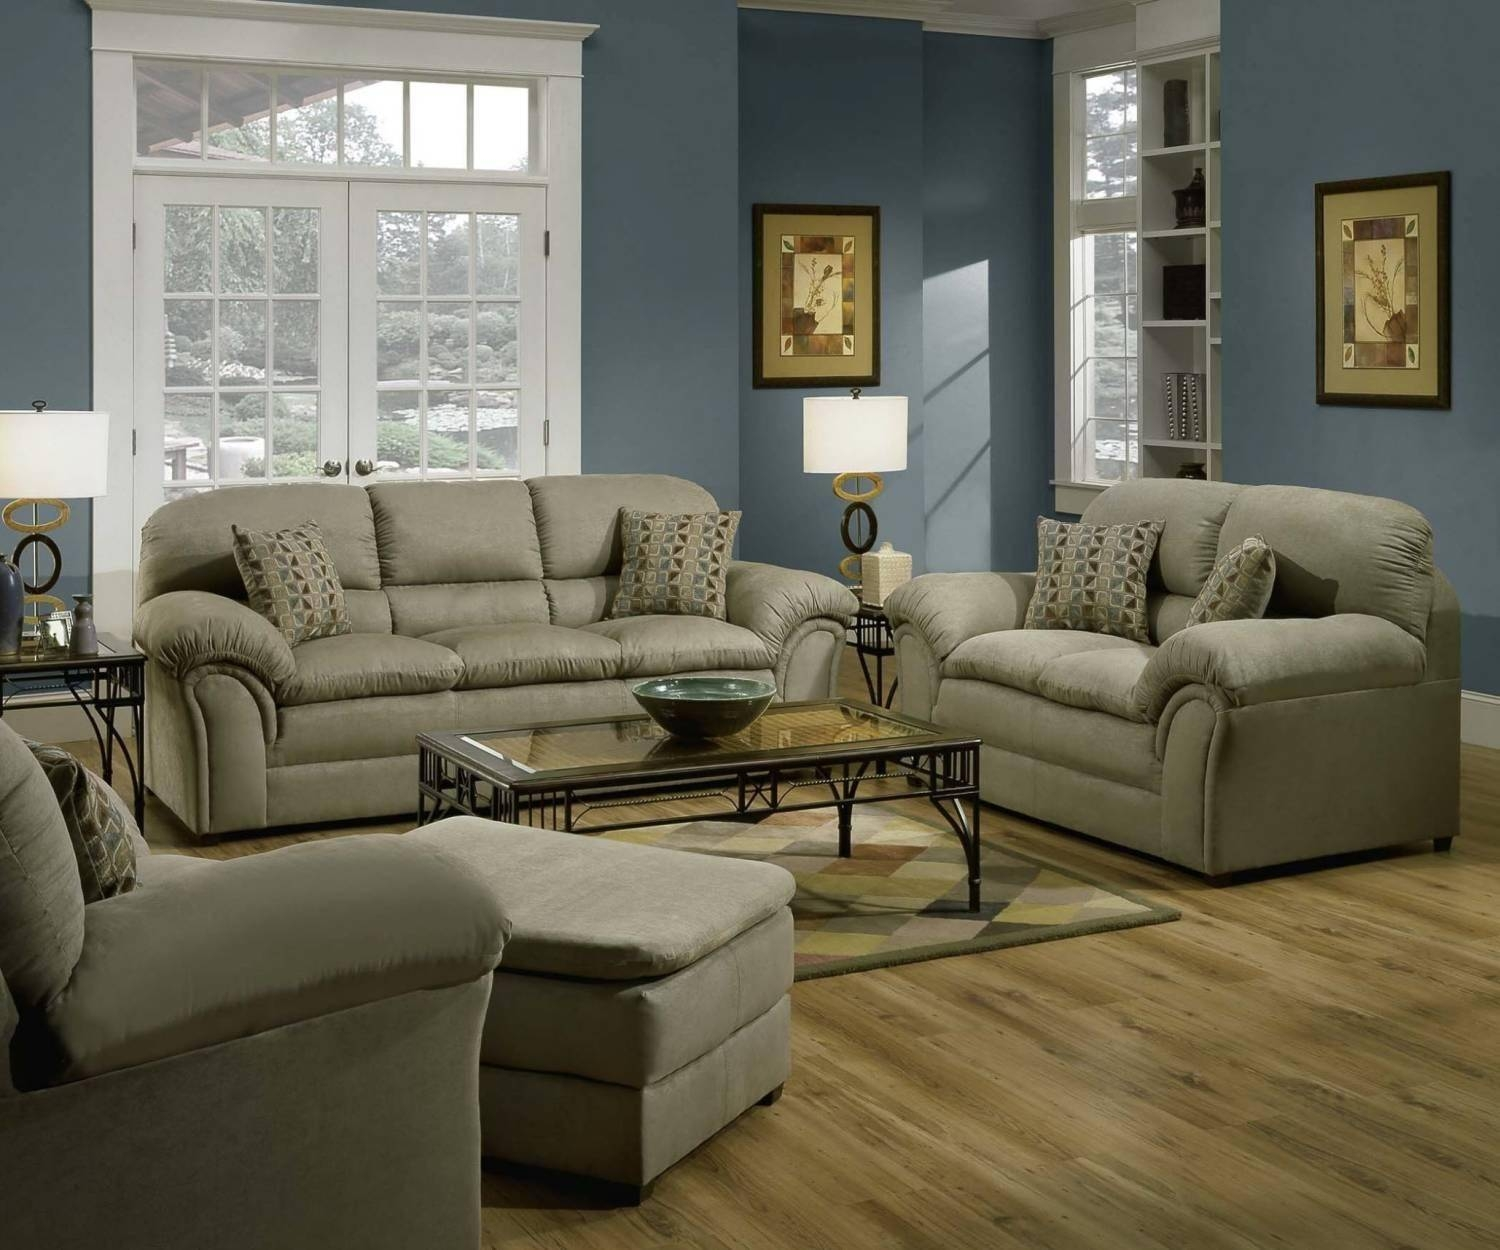 20+ Choices Of Simmons Microfiber Sofas | Sofa Ideas with regard to Simmons Microfiber Sofas (Image 6 of 15)